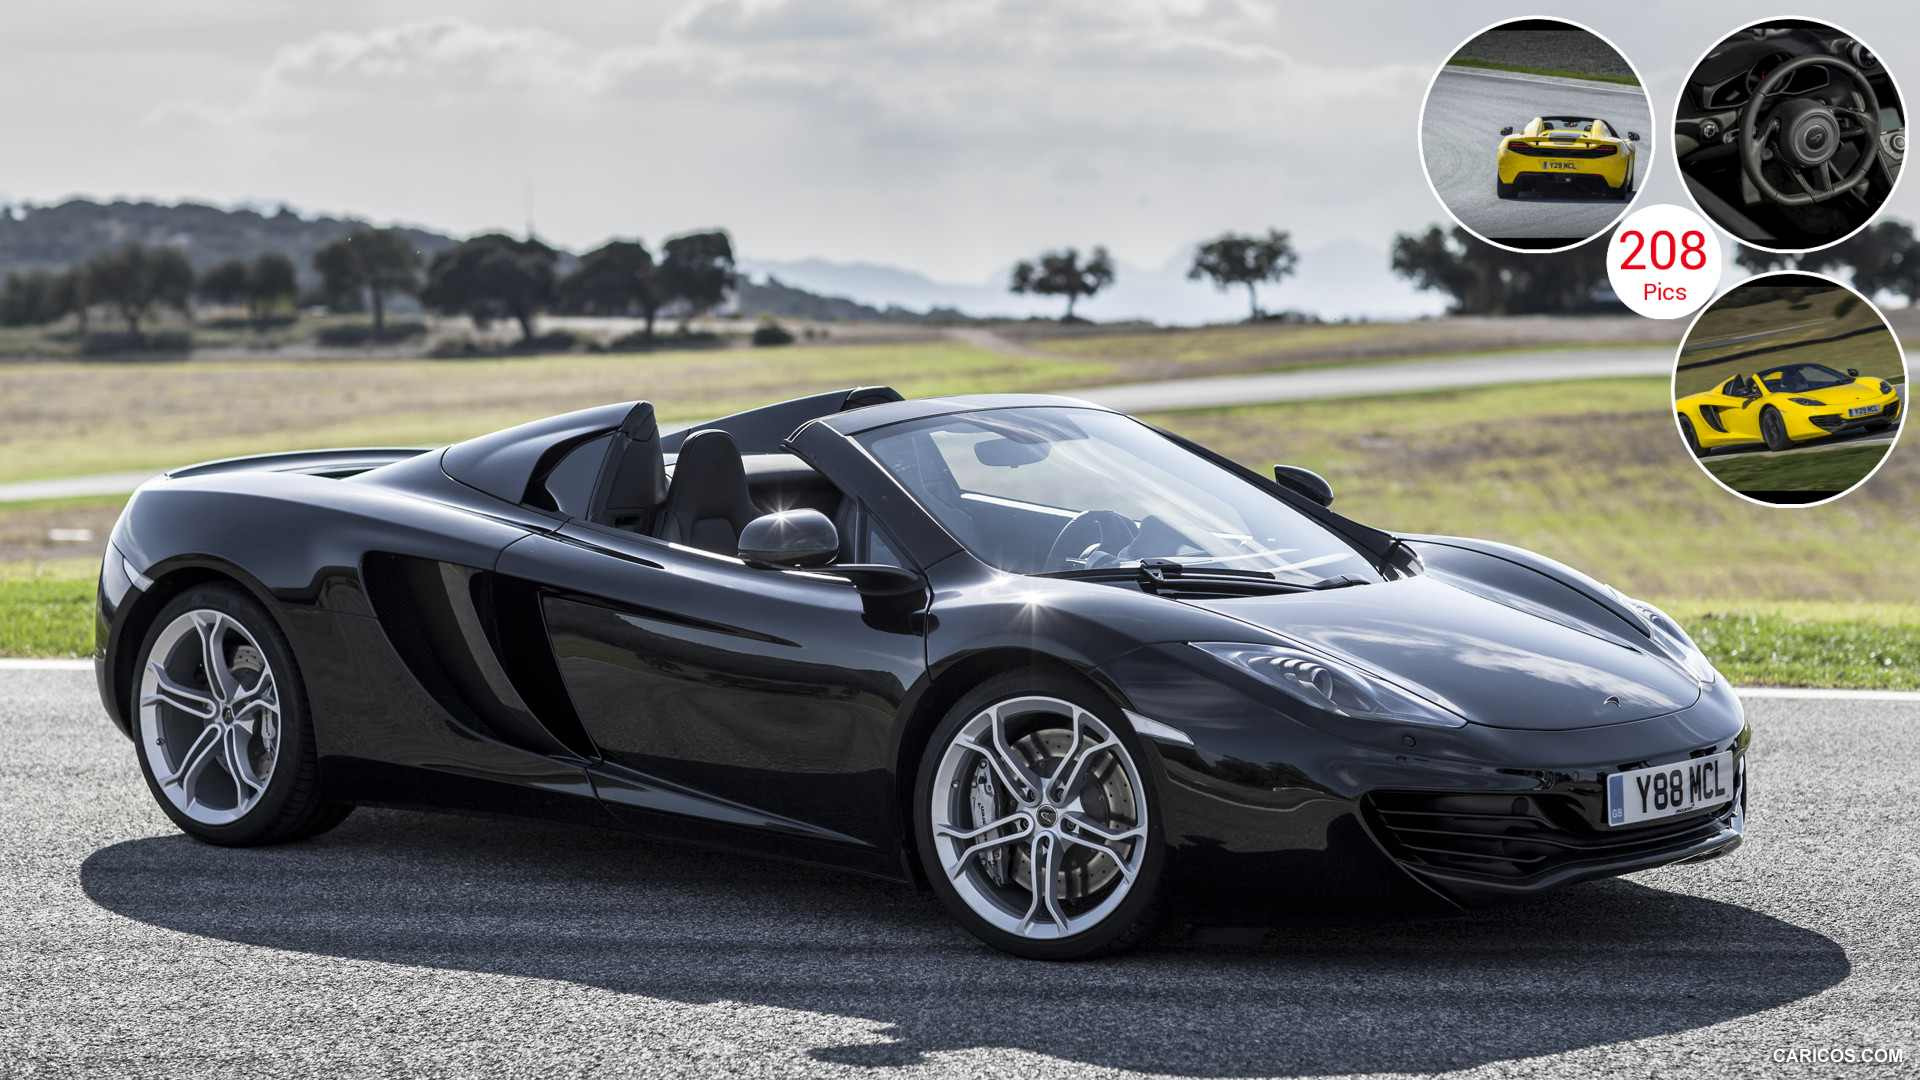 How You Can Rent These Top 10 Exotic Cars and Luxury Cars This Year